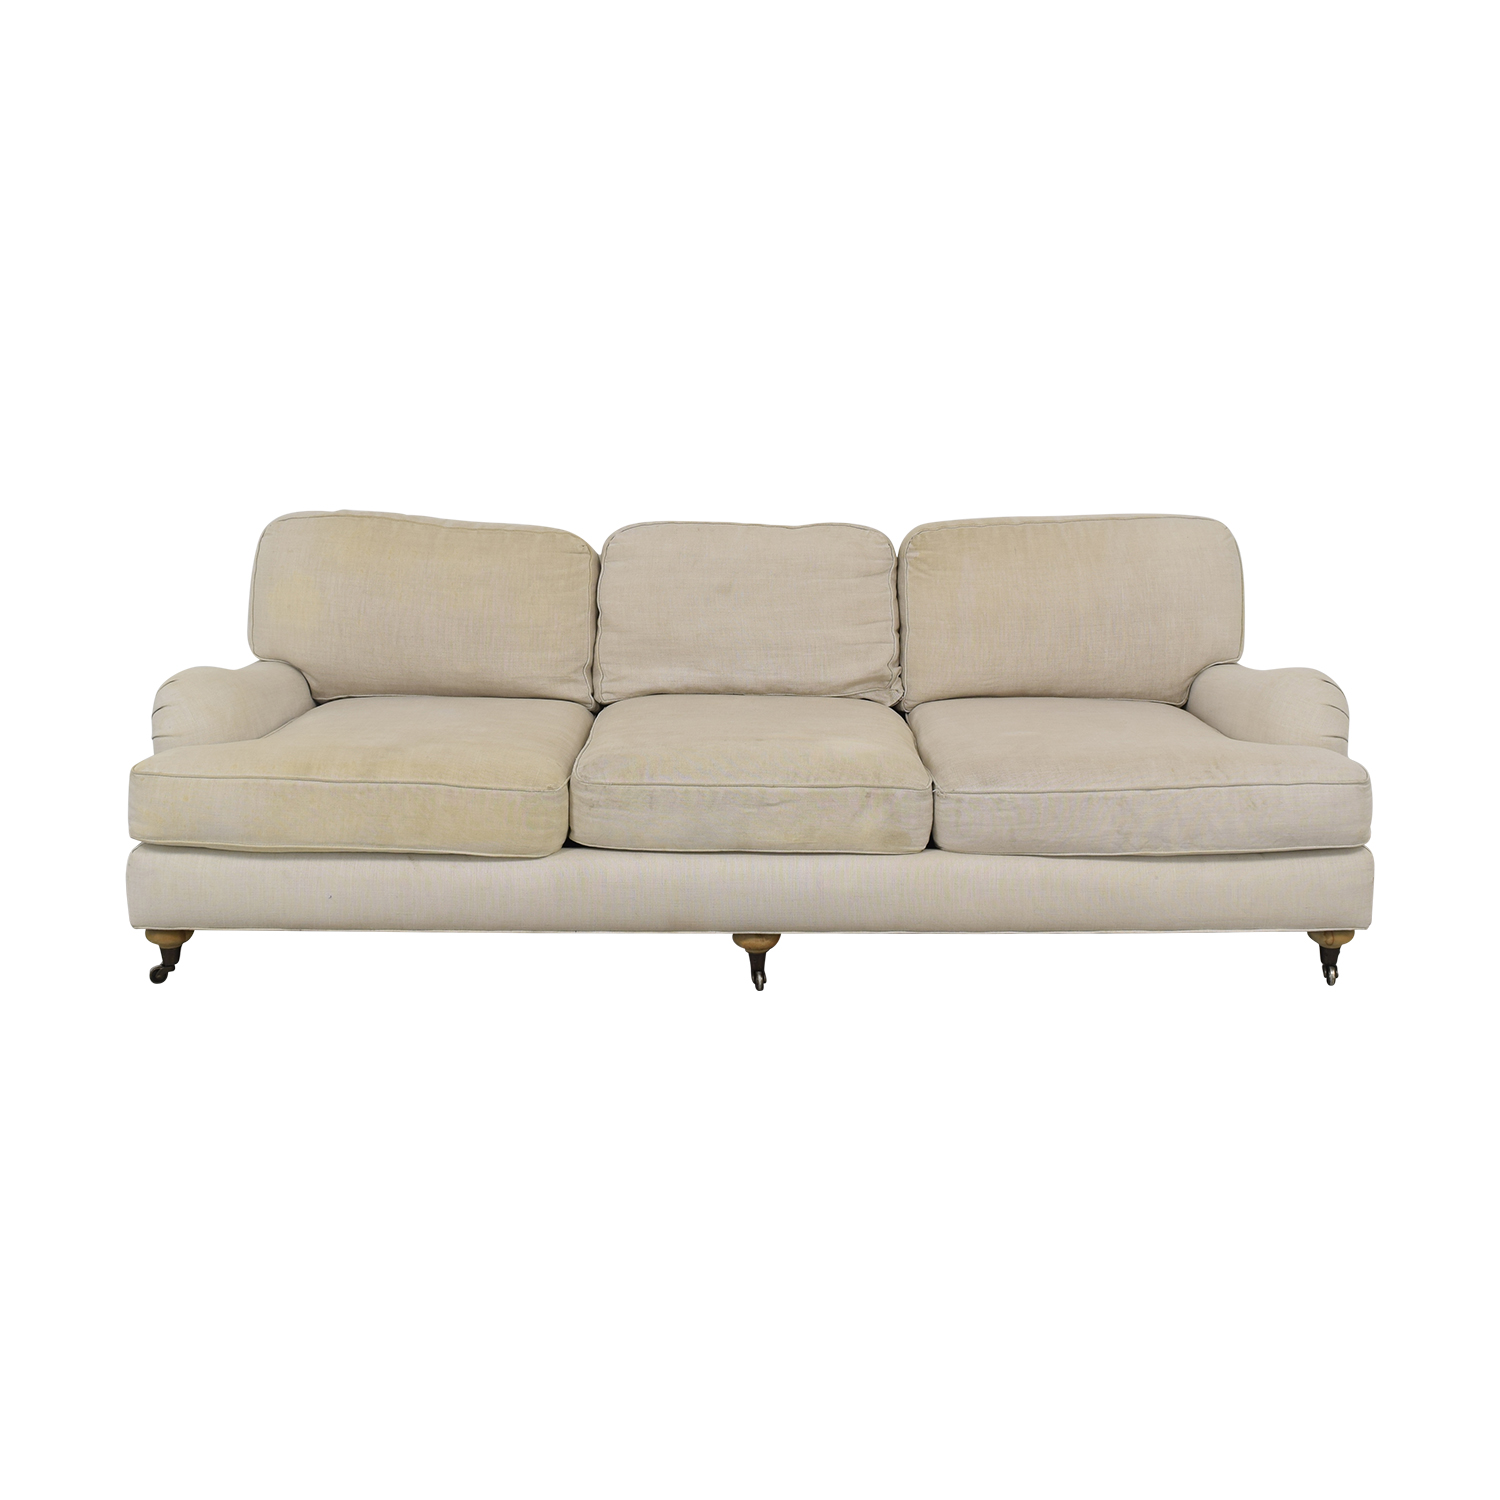 Restoration Hardware Restoration Hardware English Roll Arm Sofa price